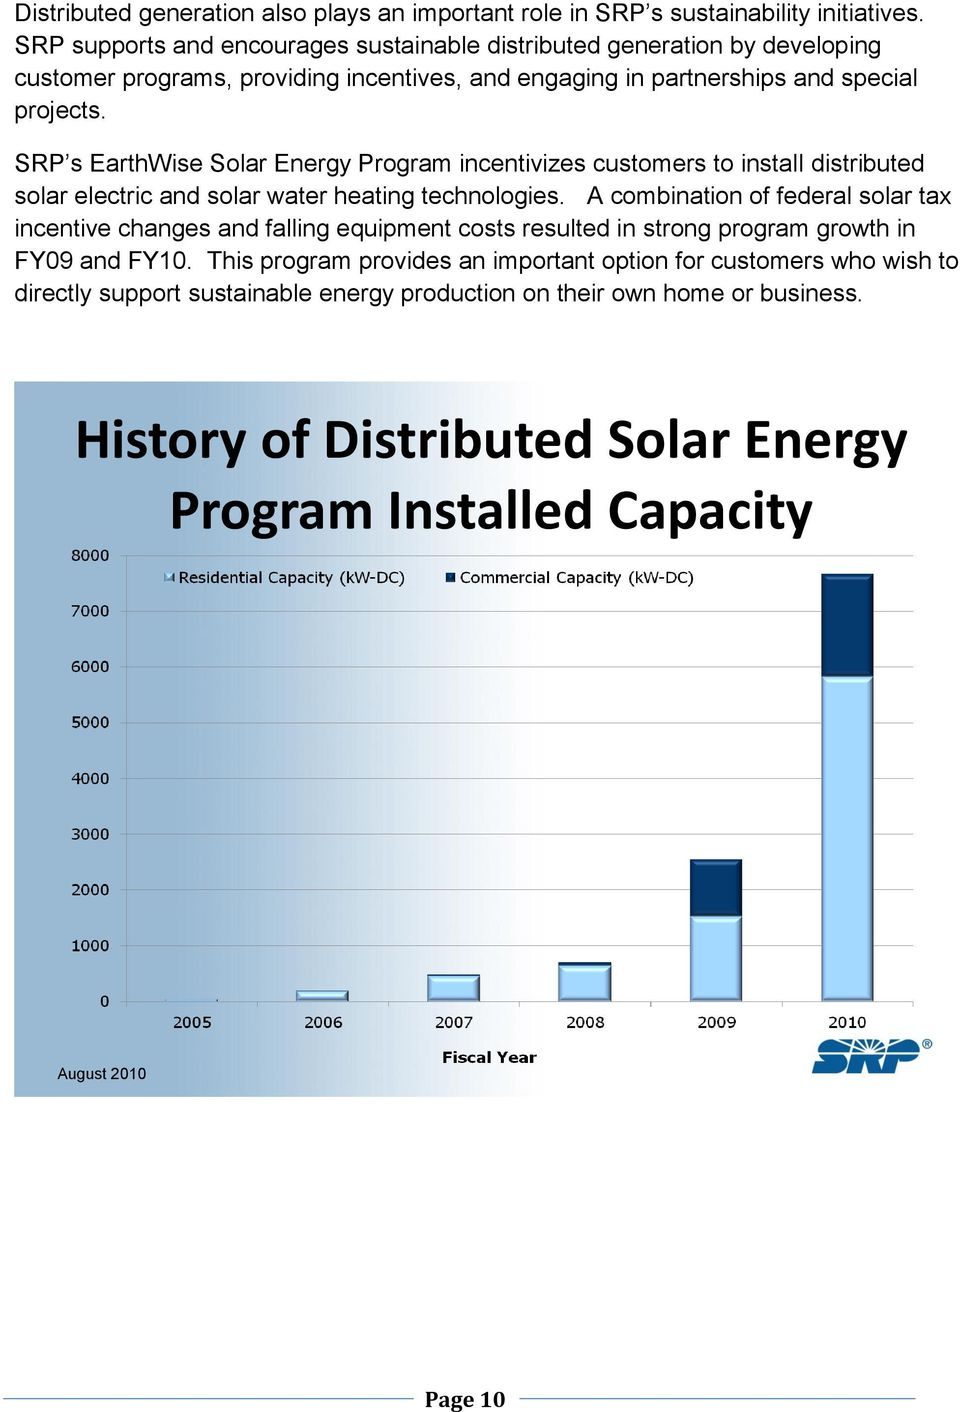 SRP s EarthWise Solar Energy Program incentivizes customers to install distributed solar electric and solar water heating technologies.